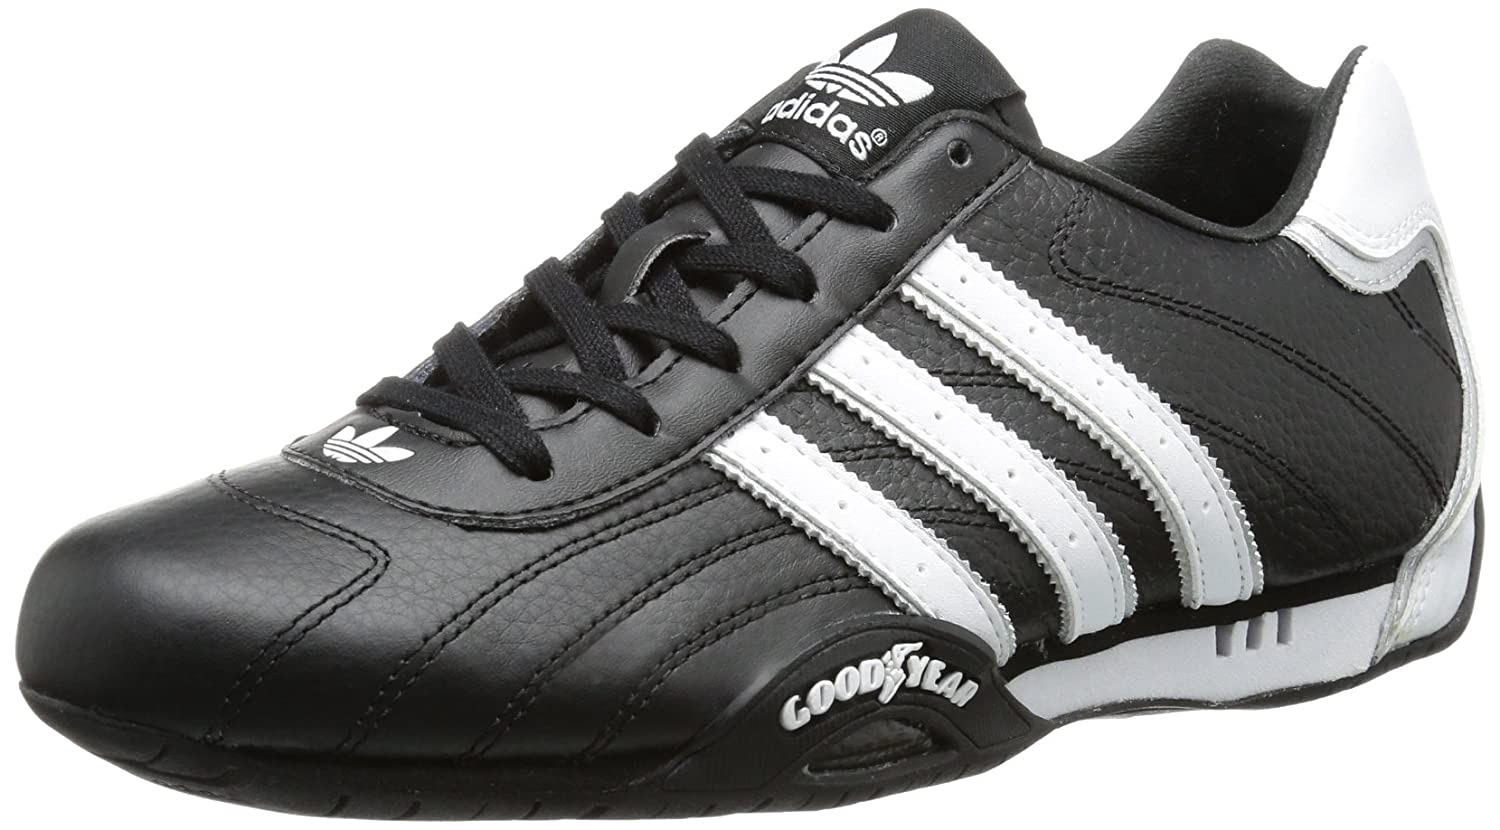 adidas originals adi racer low goodyear 42 46 5 new 110 samba special gazelle z color black. Black Bedroom Furniture Sets. Home Design Ideas